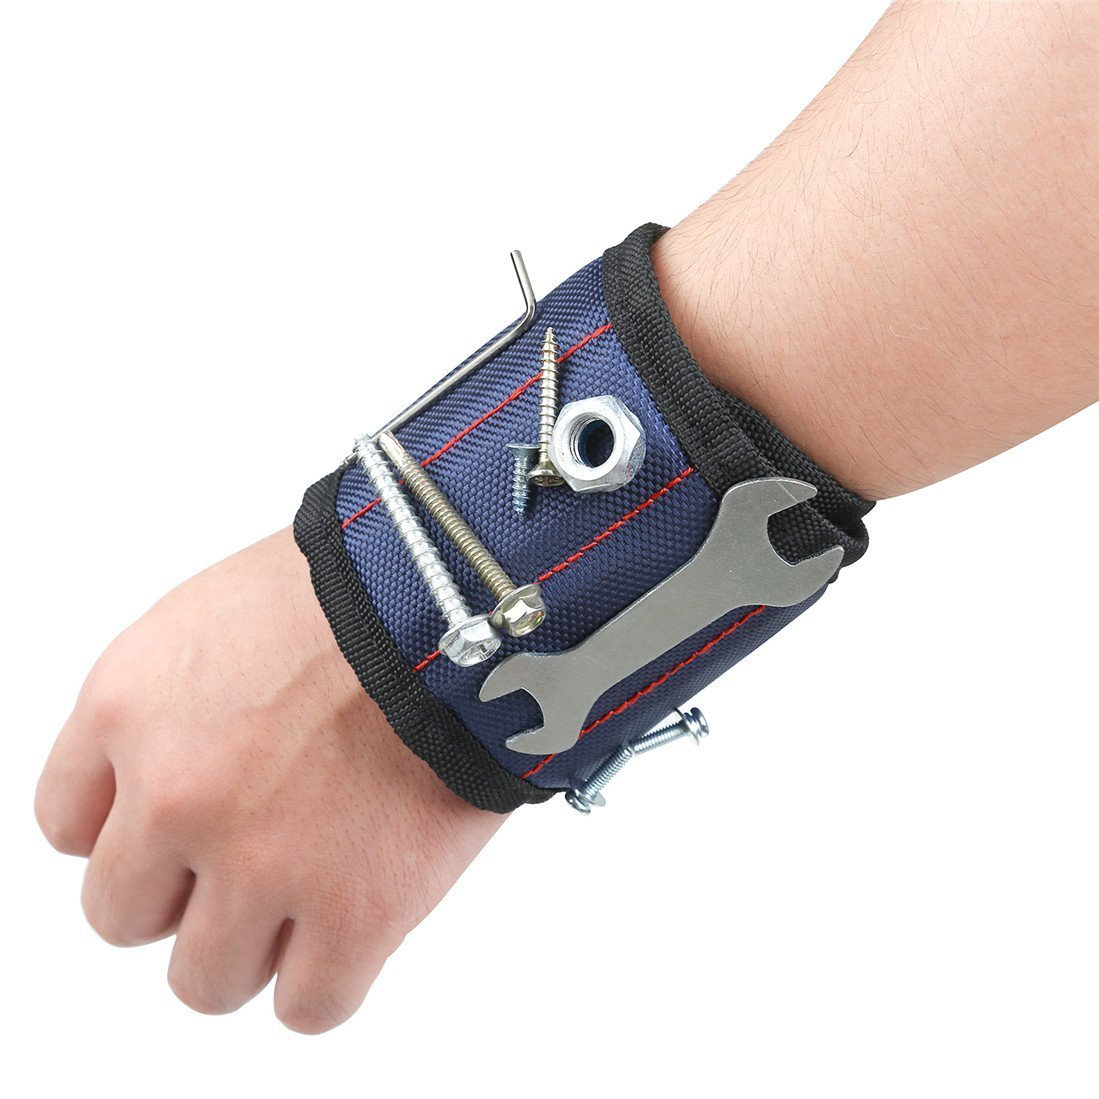 Heavy Duty Magnetic Wristband with Super Strong Magnets for Holding Screws, Nails, Drill Bits Royal Blue